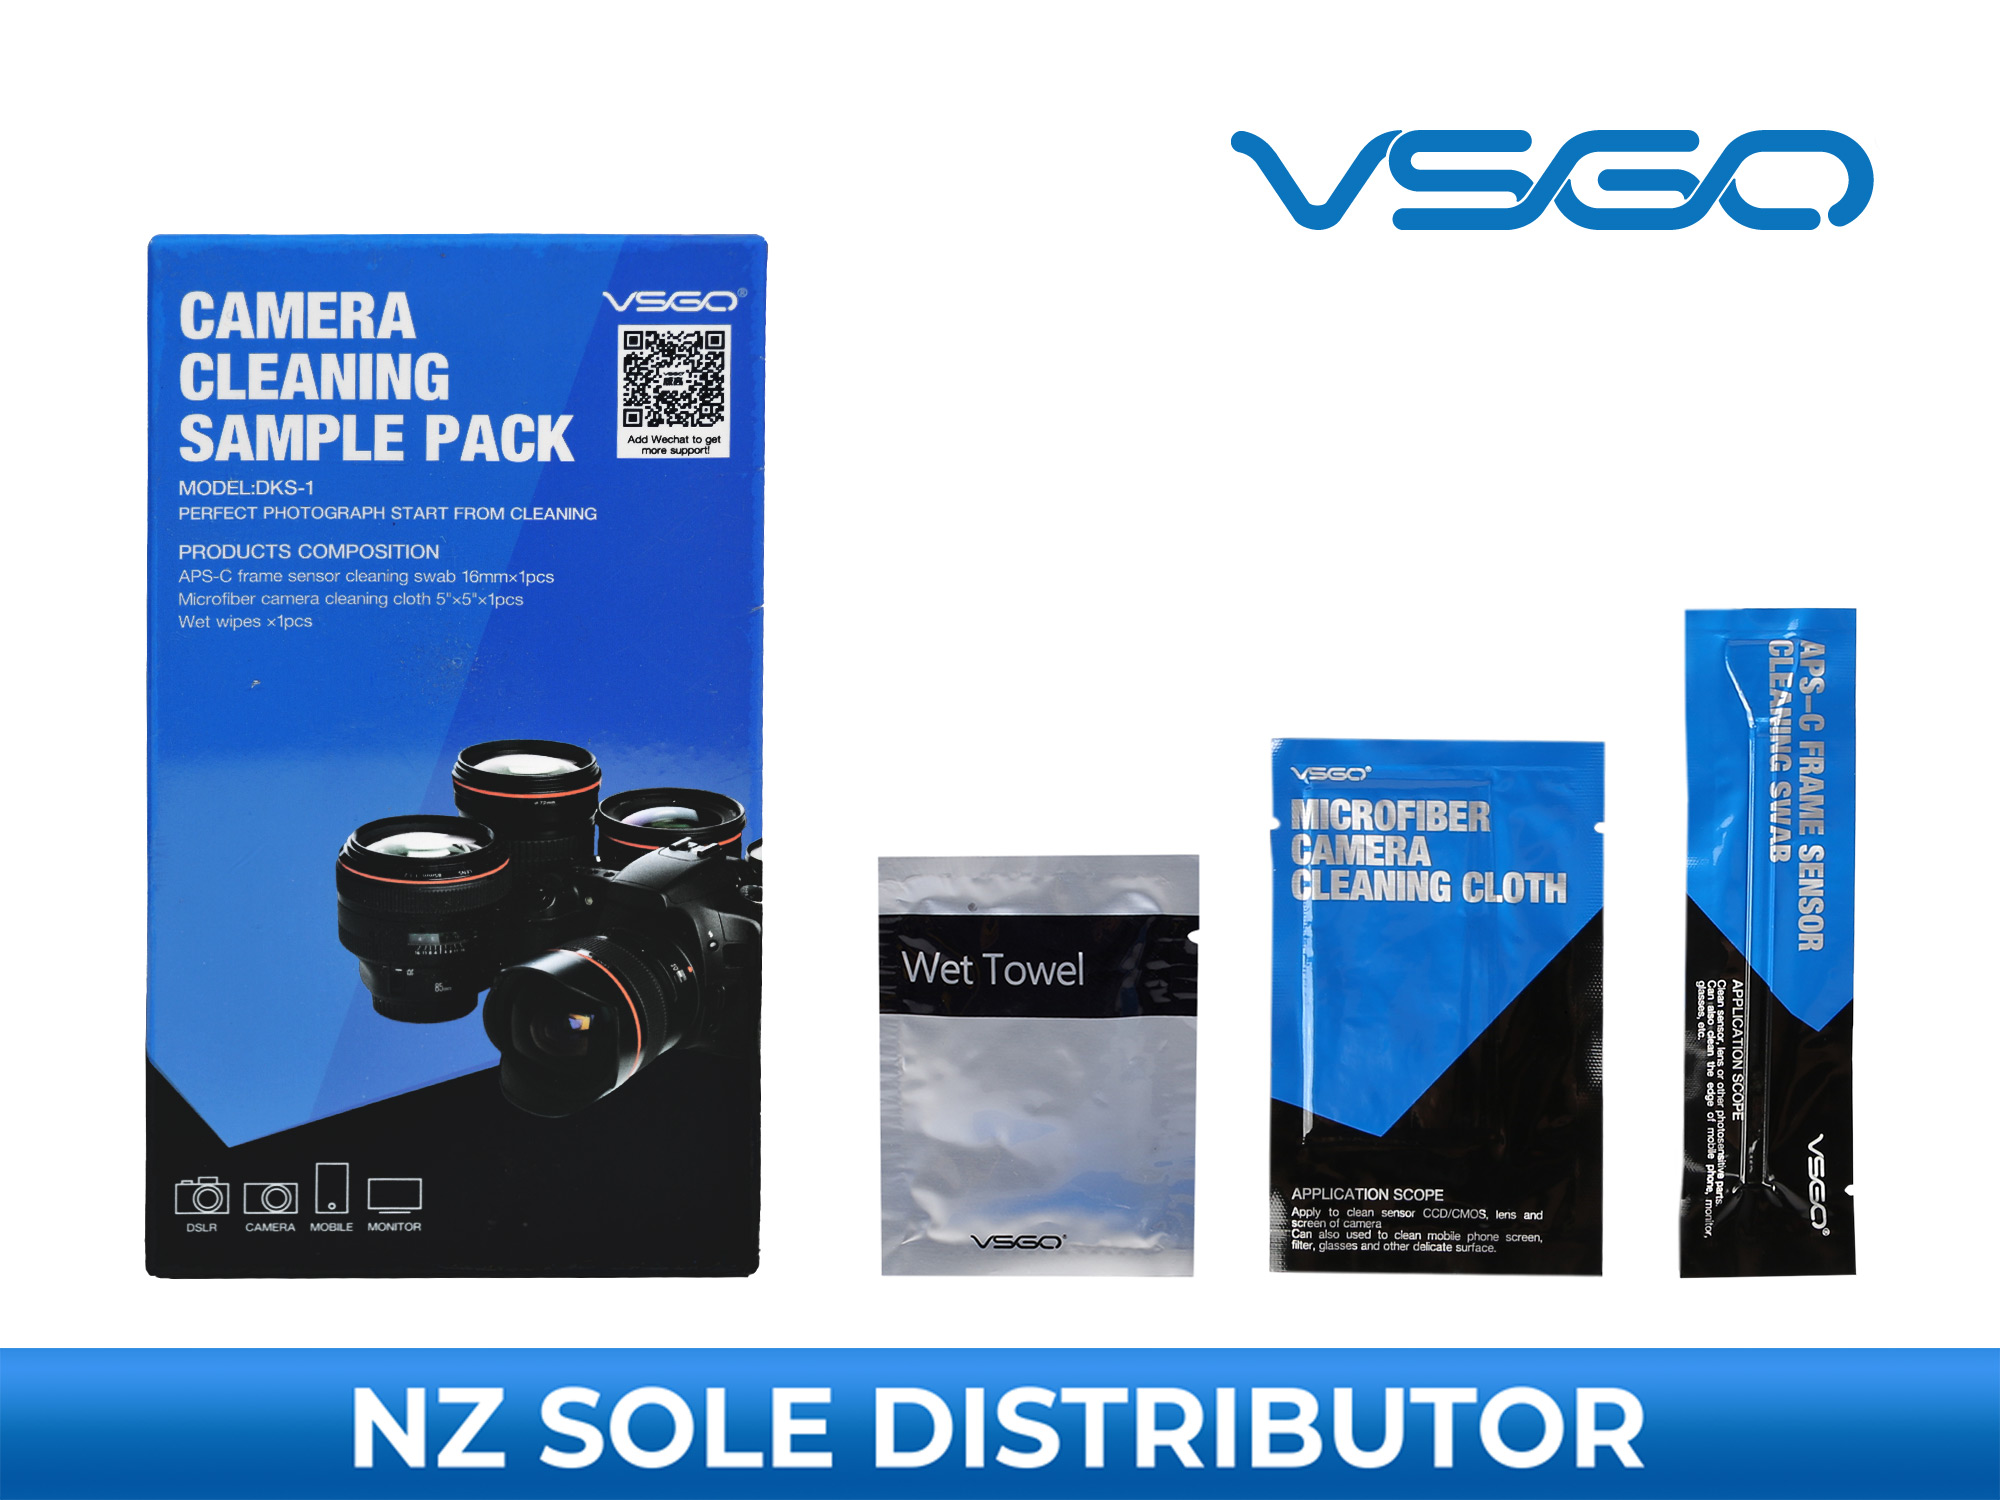 Camera Cleaning Sample Pack - VSGO